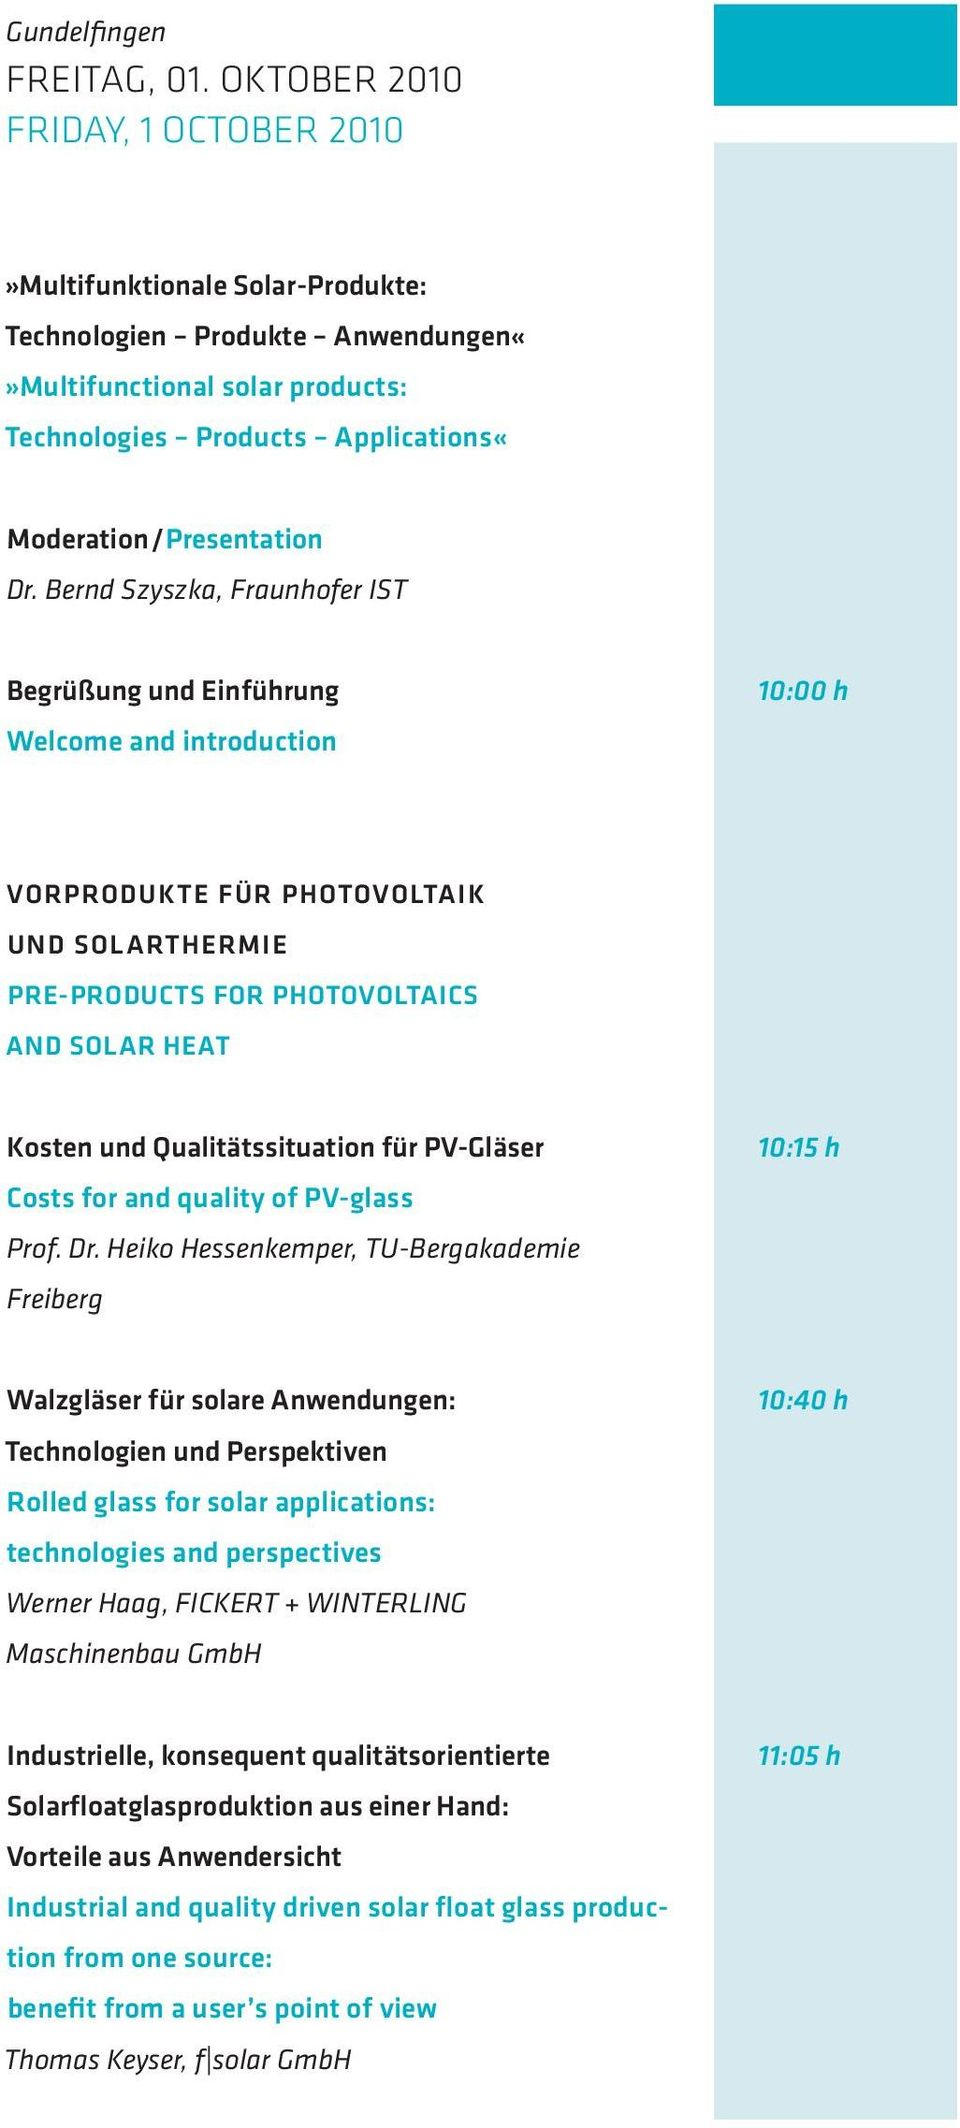 Bernd Szyszka, Fraunhofer IST Begrüßung und Einführung Welcome and introduction 10:00 h VORPRODUKTE FÜR PHOTOVOLTAIK UND SOLARTHERMIE PRE-PRODUCTS FOR PHOTOVOLTAICS AND SOLAR HEAT Kosten und